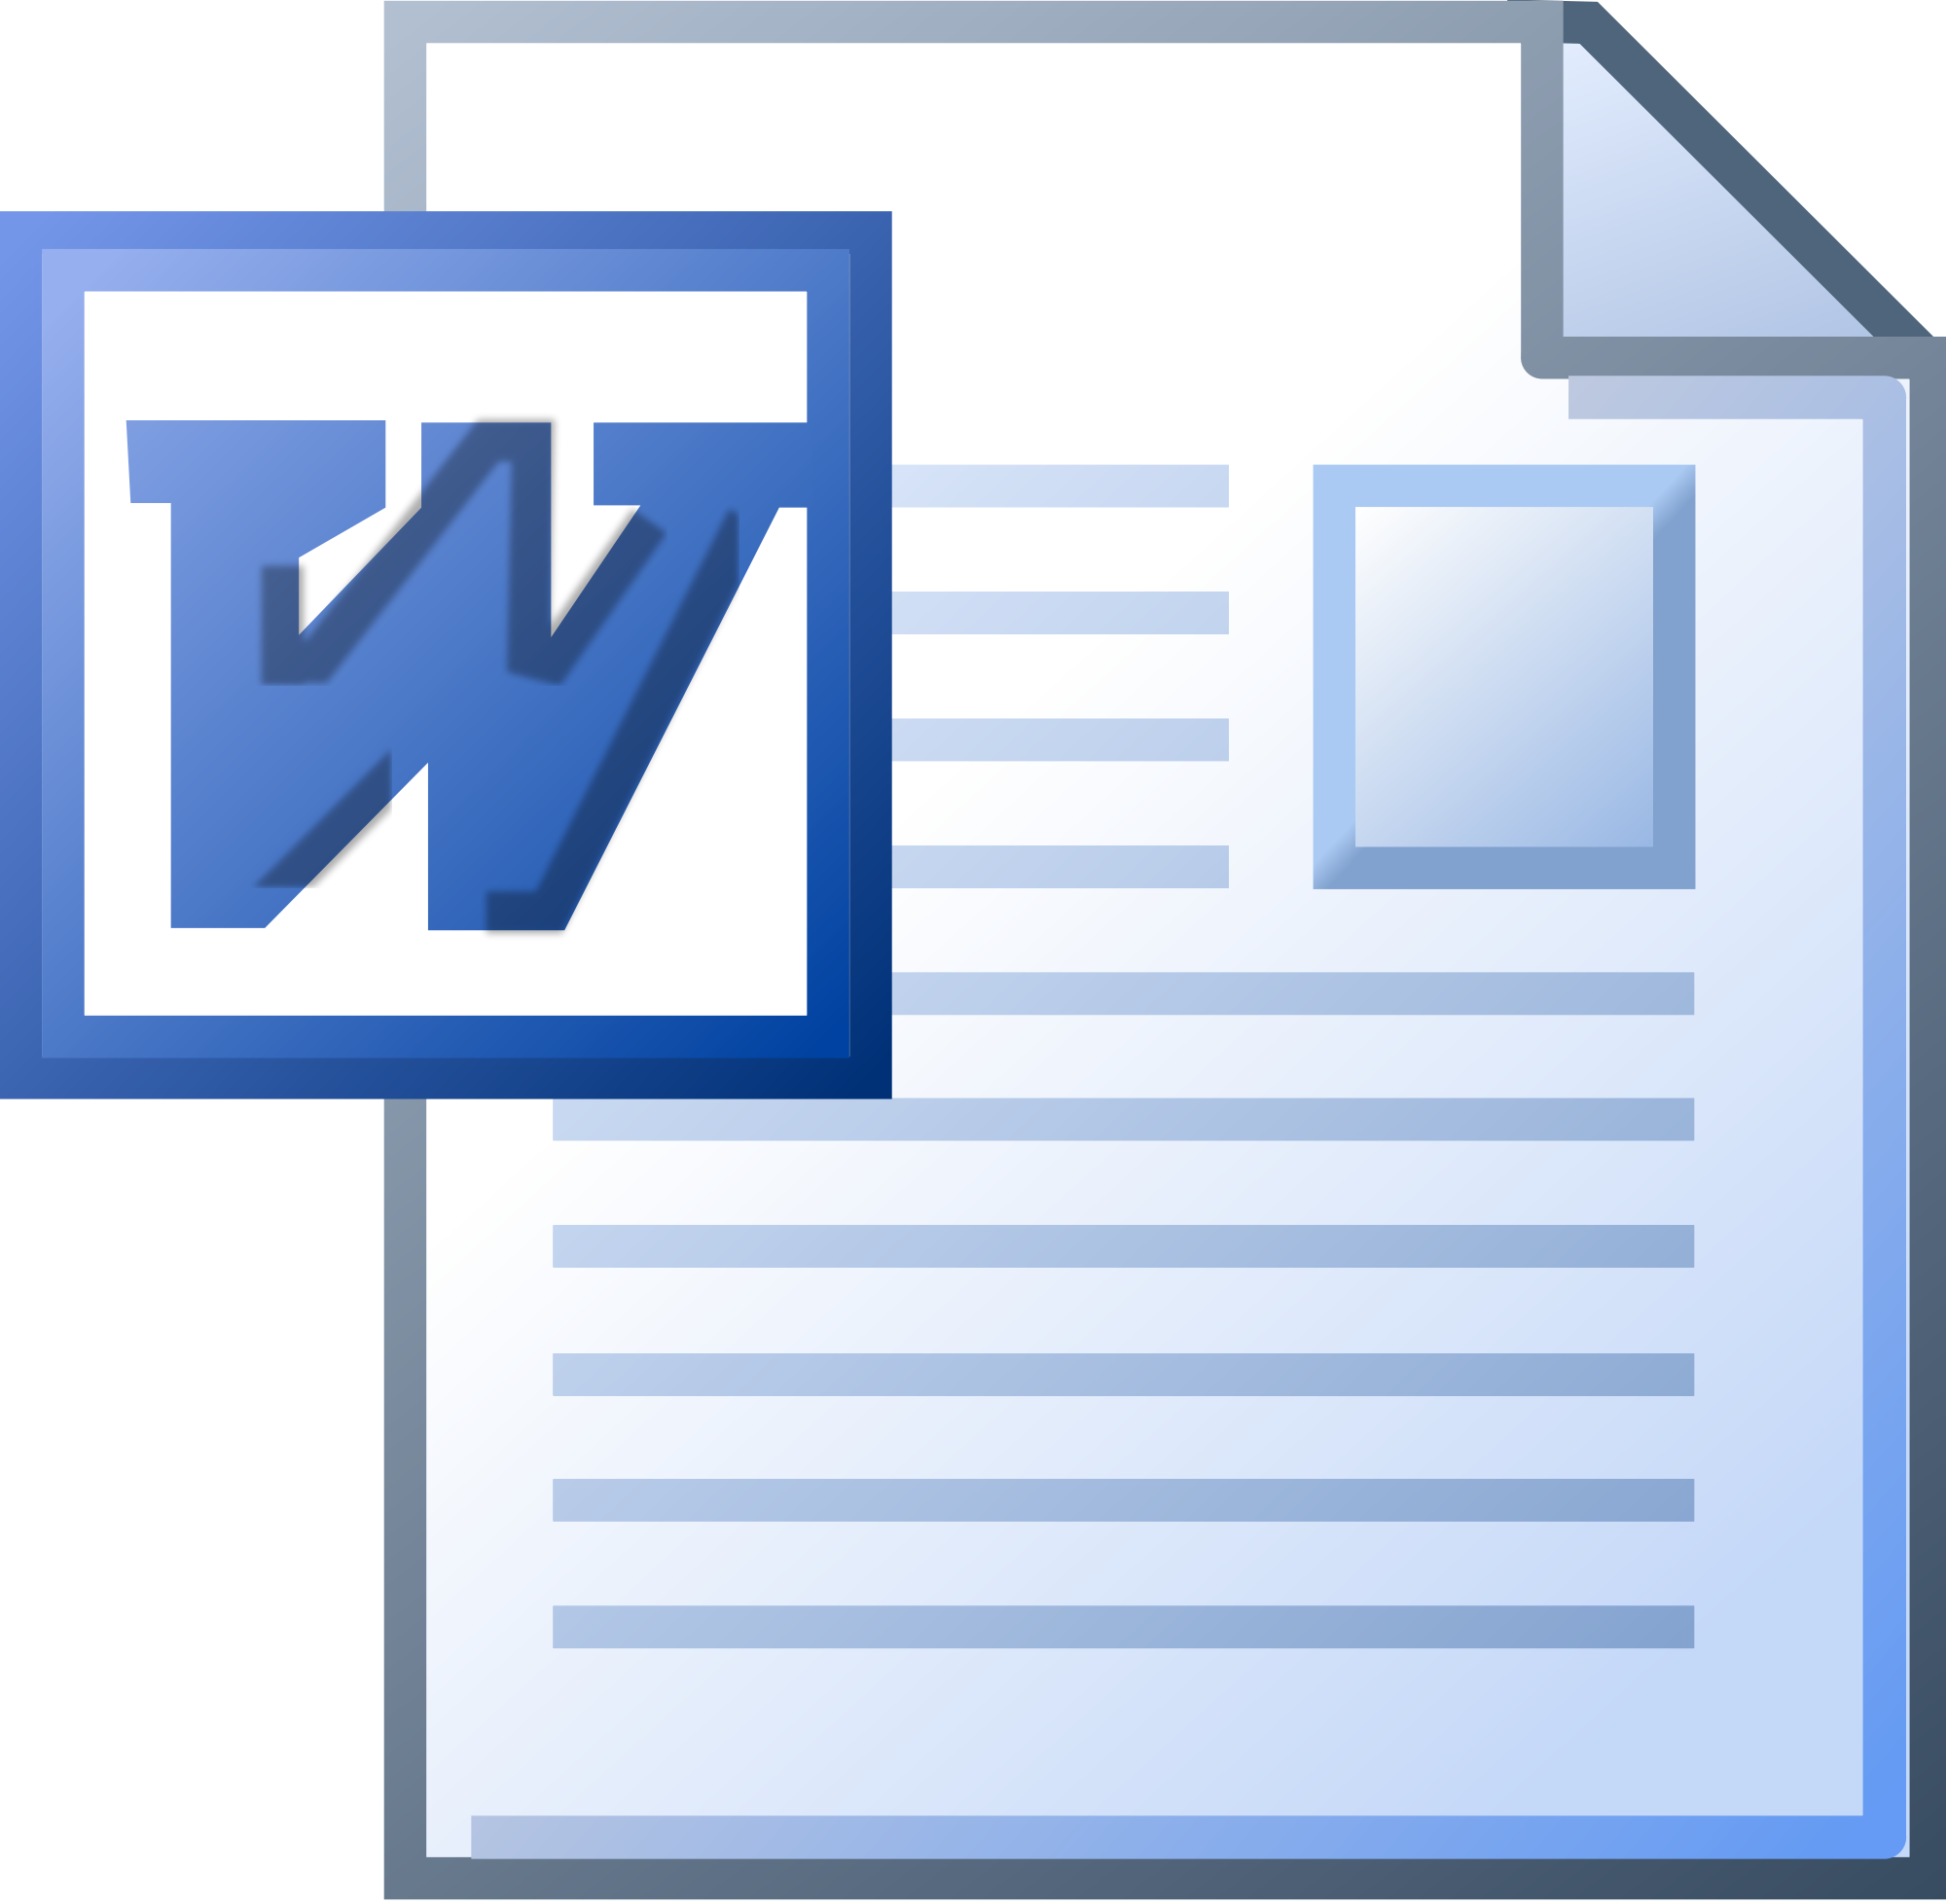 worddoc-download-icon